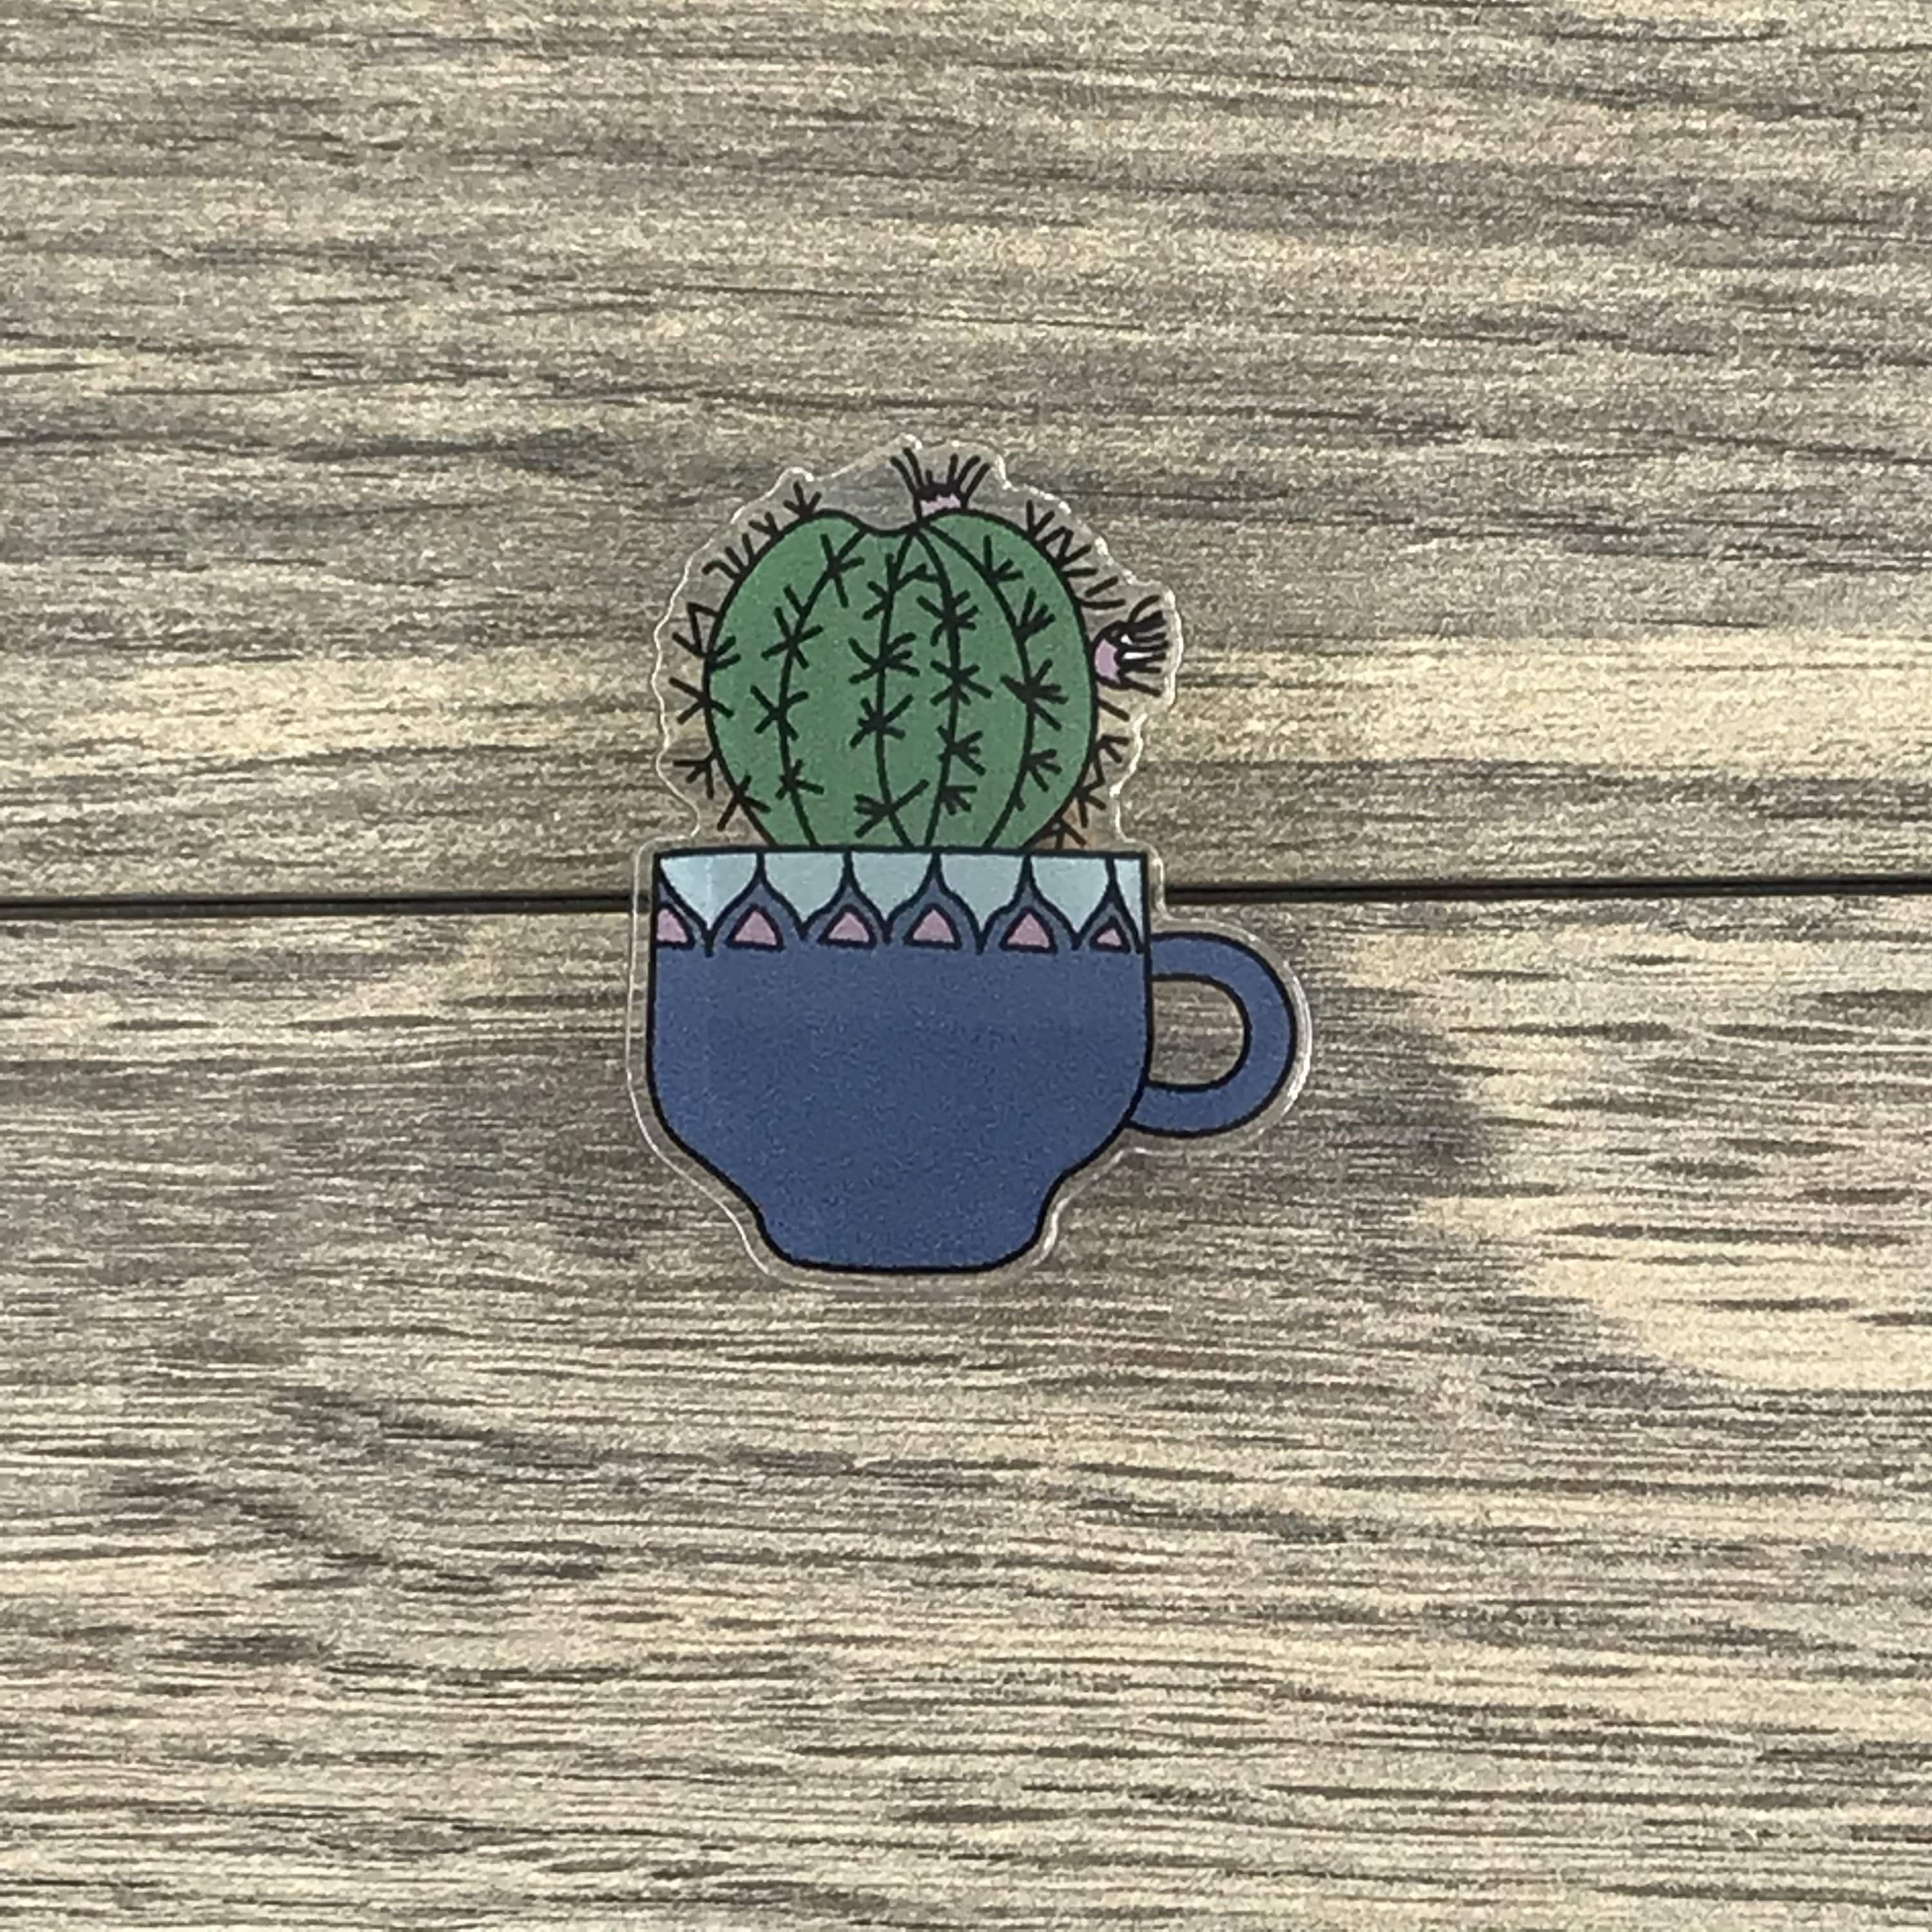 The Plant Farm Fun Stuff Cactus in Teapot Pin